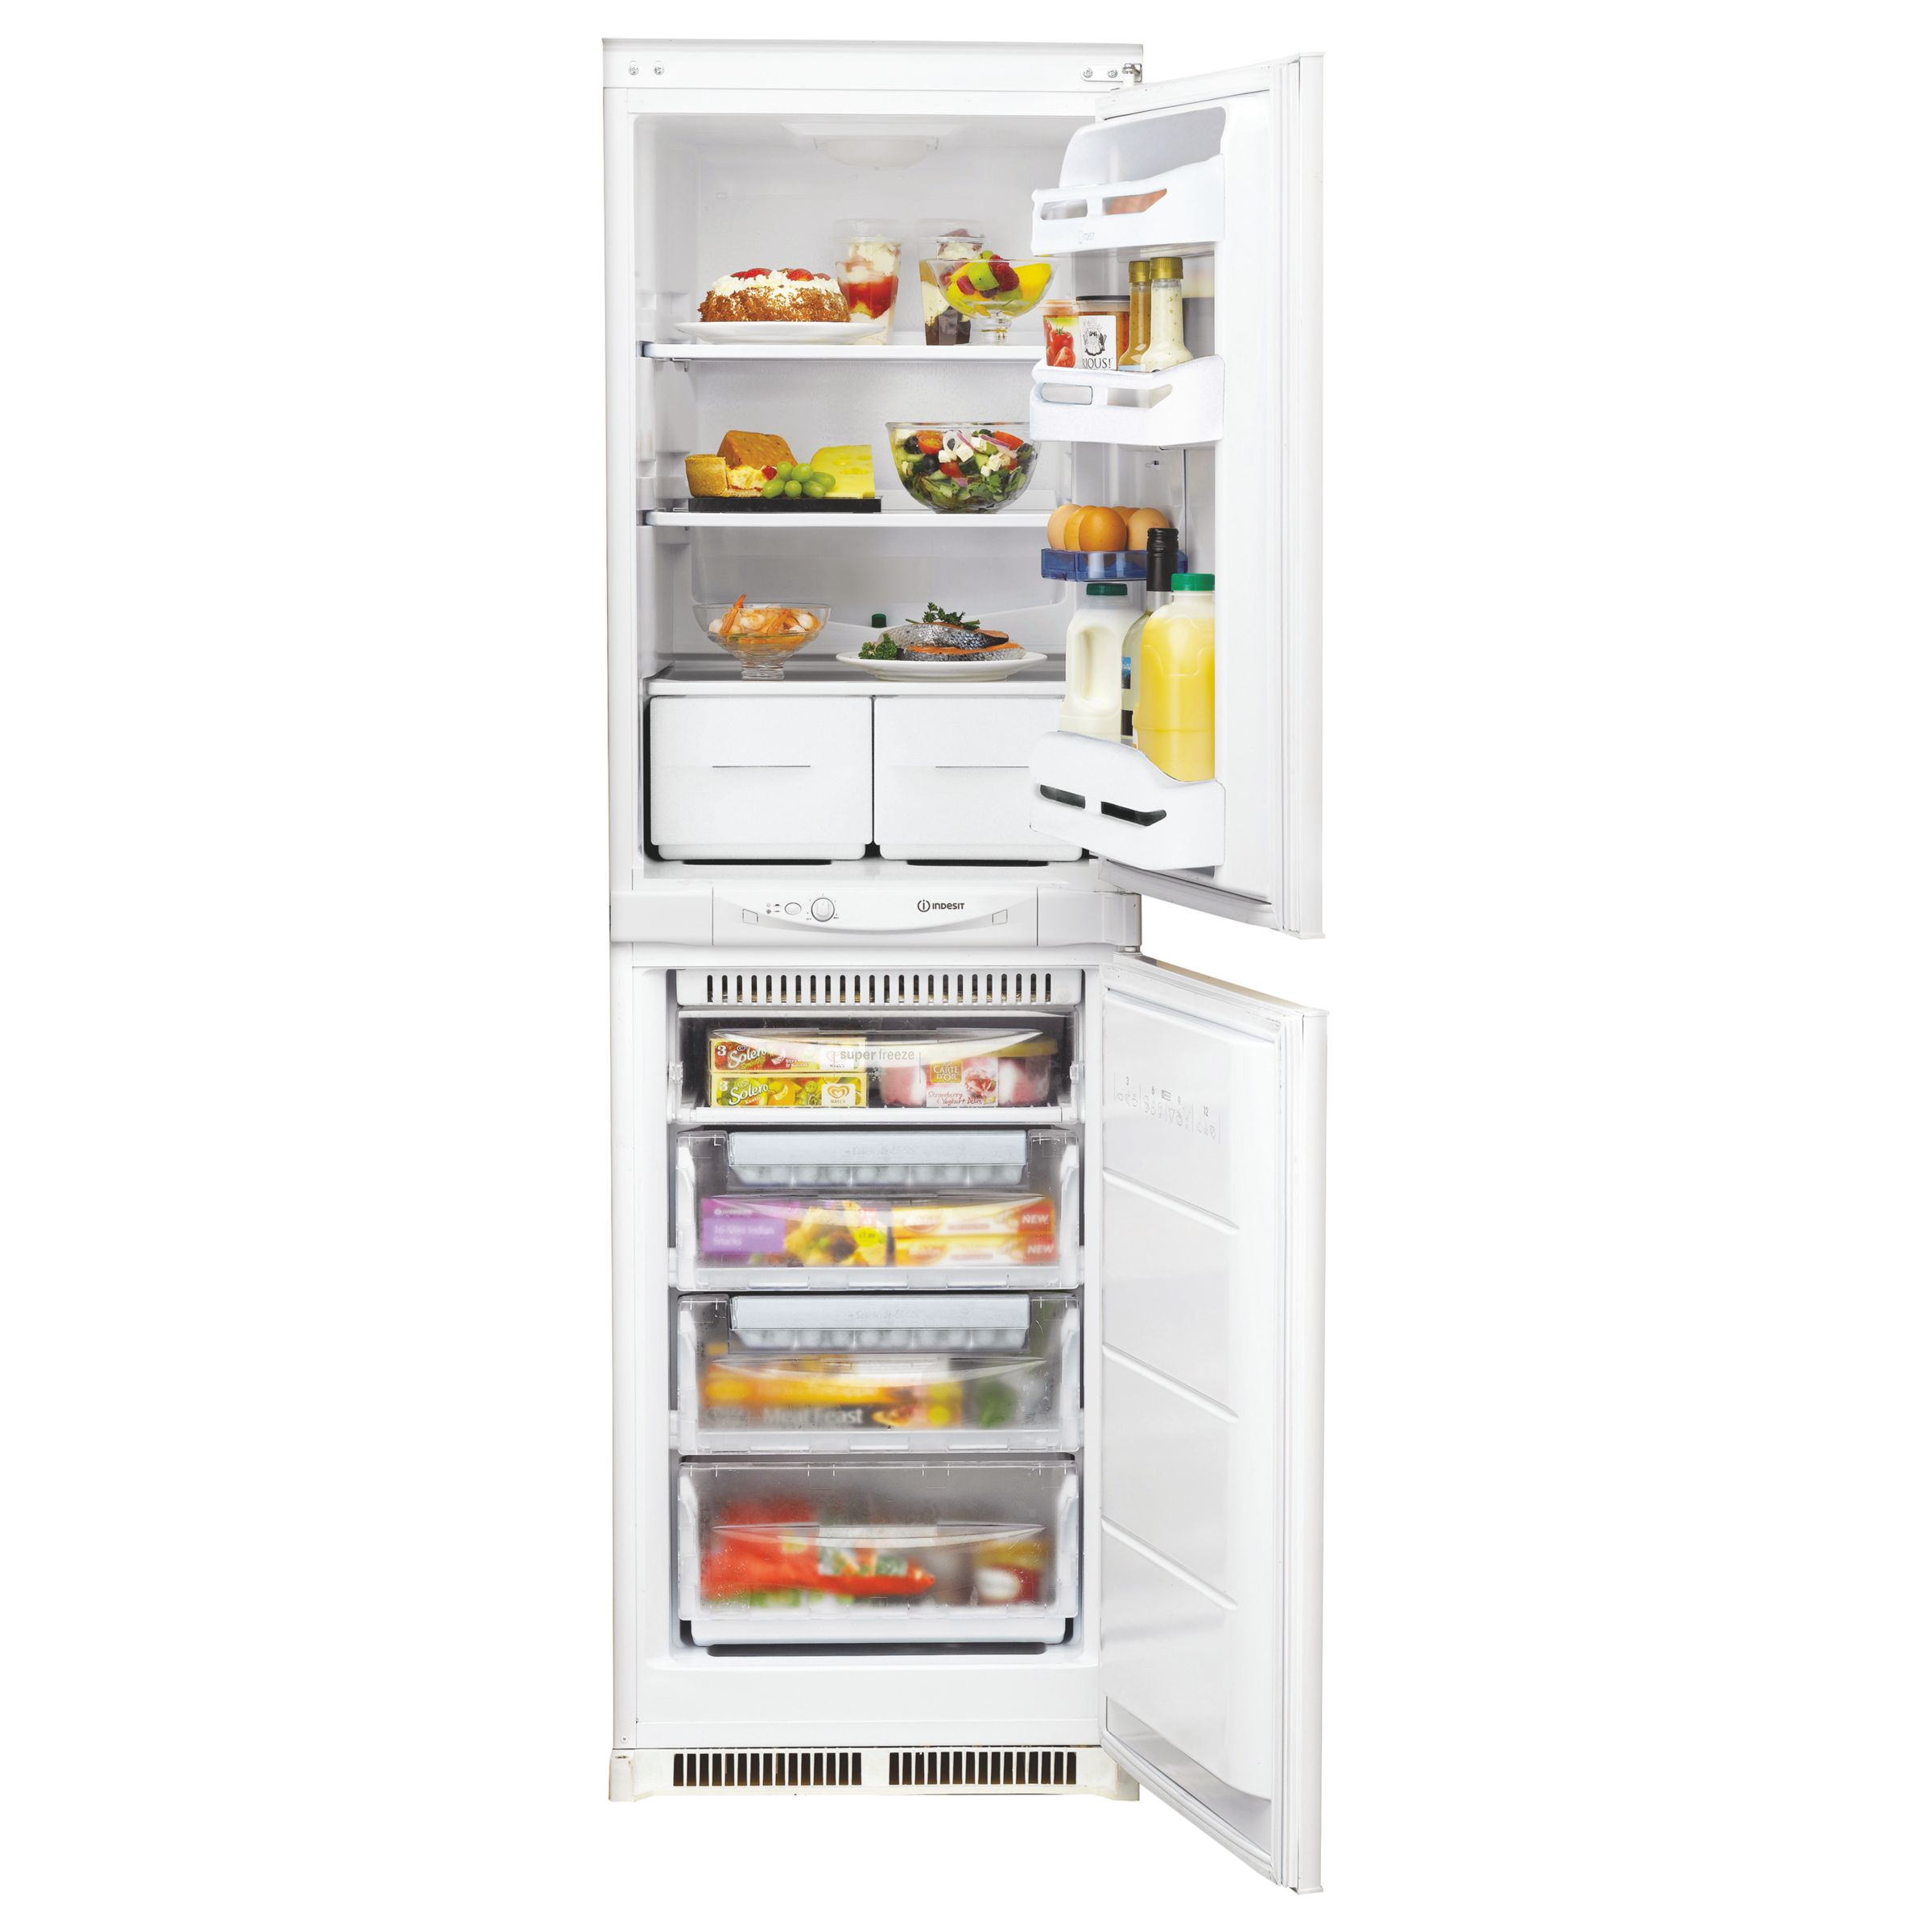 Indesit INC325FF Integrated Fridge Freezer A+ Energy Rating, 54cm Wide,  White at John Lewis & Partners